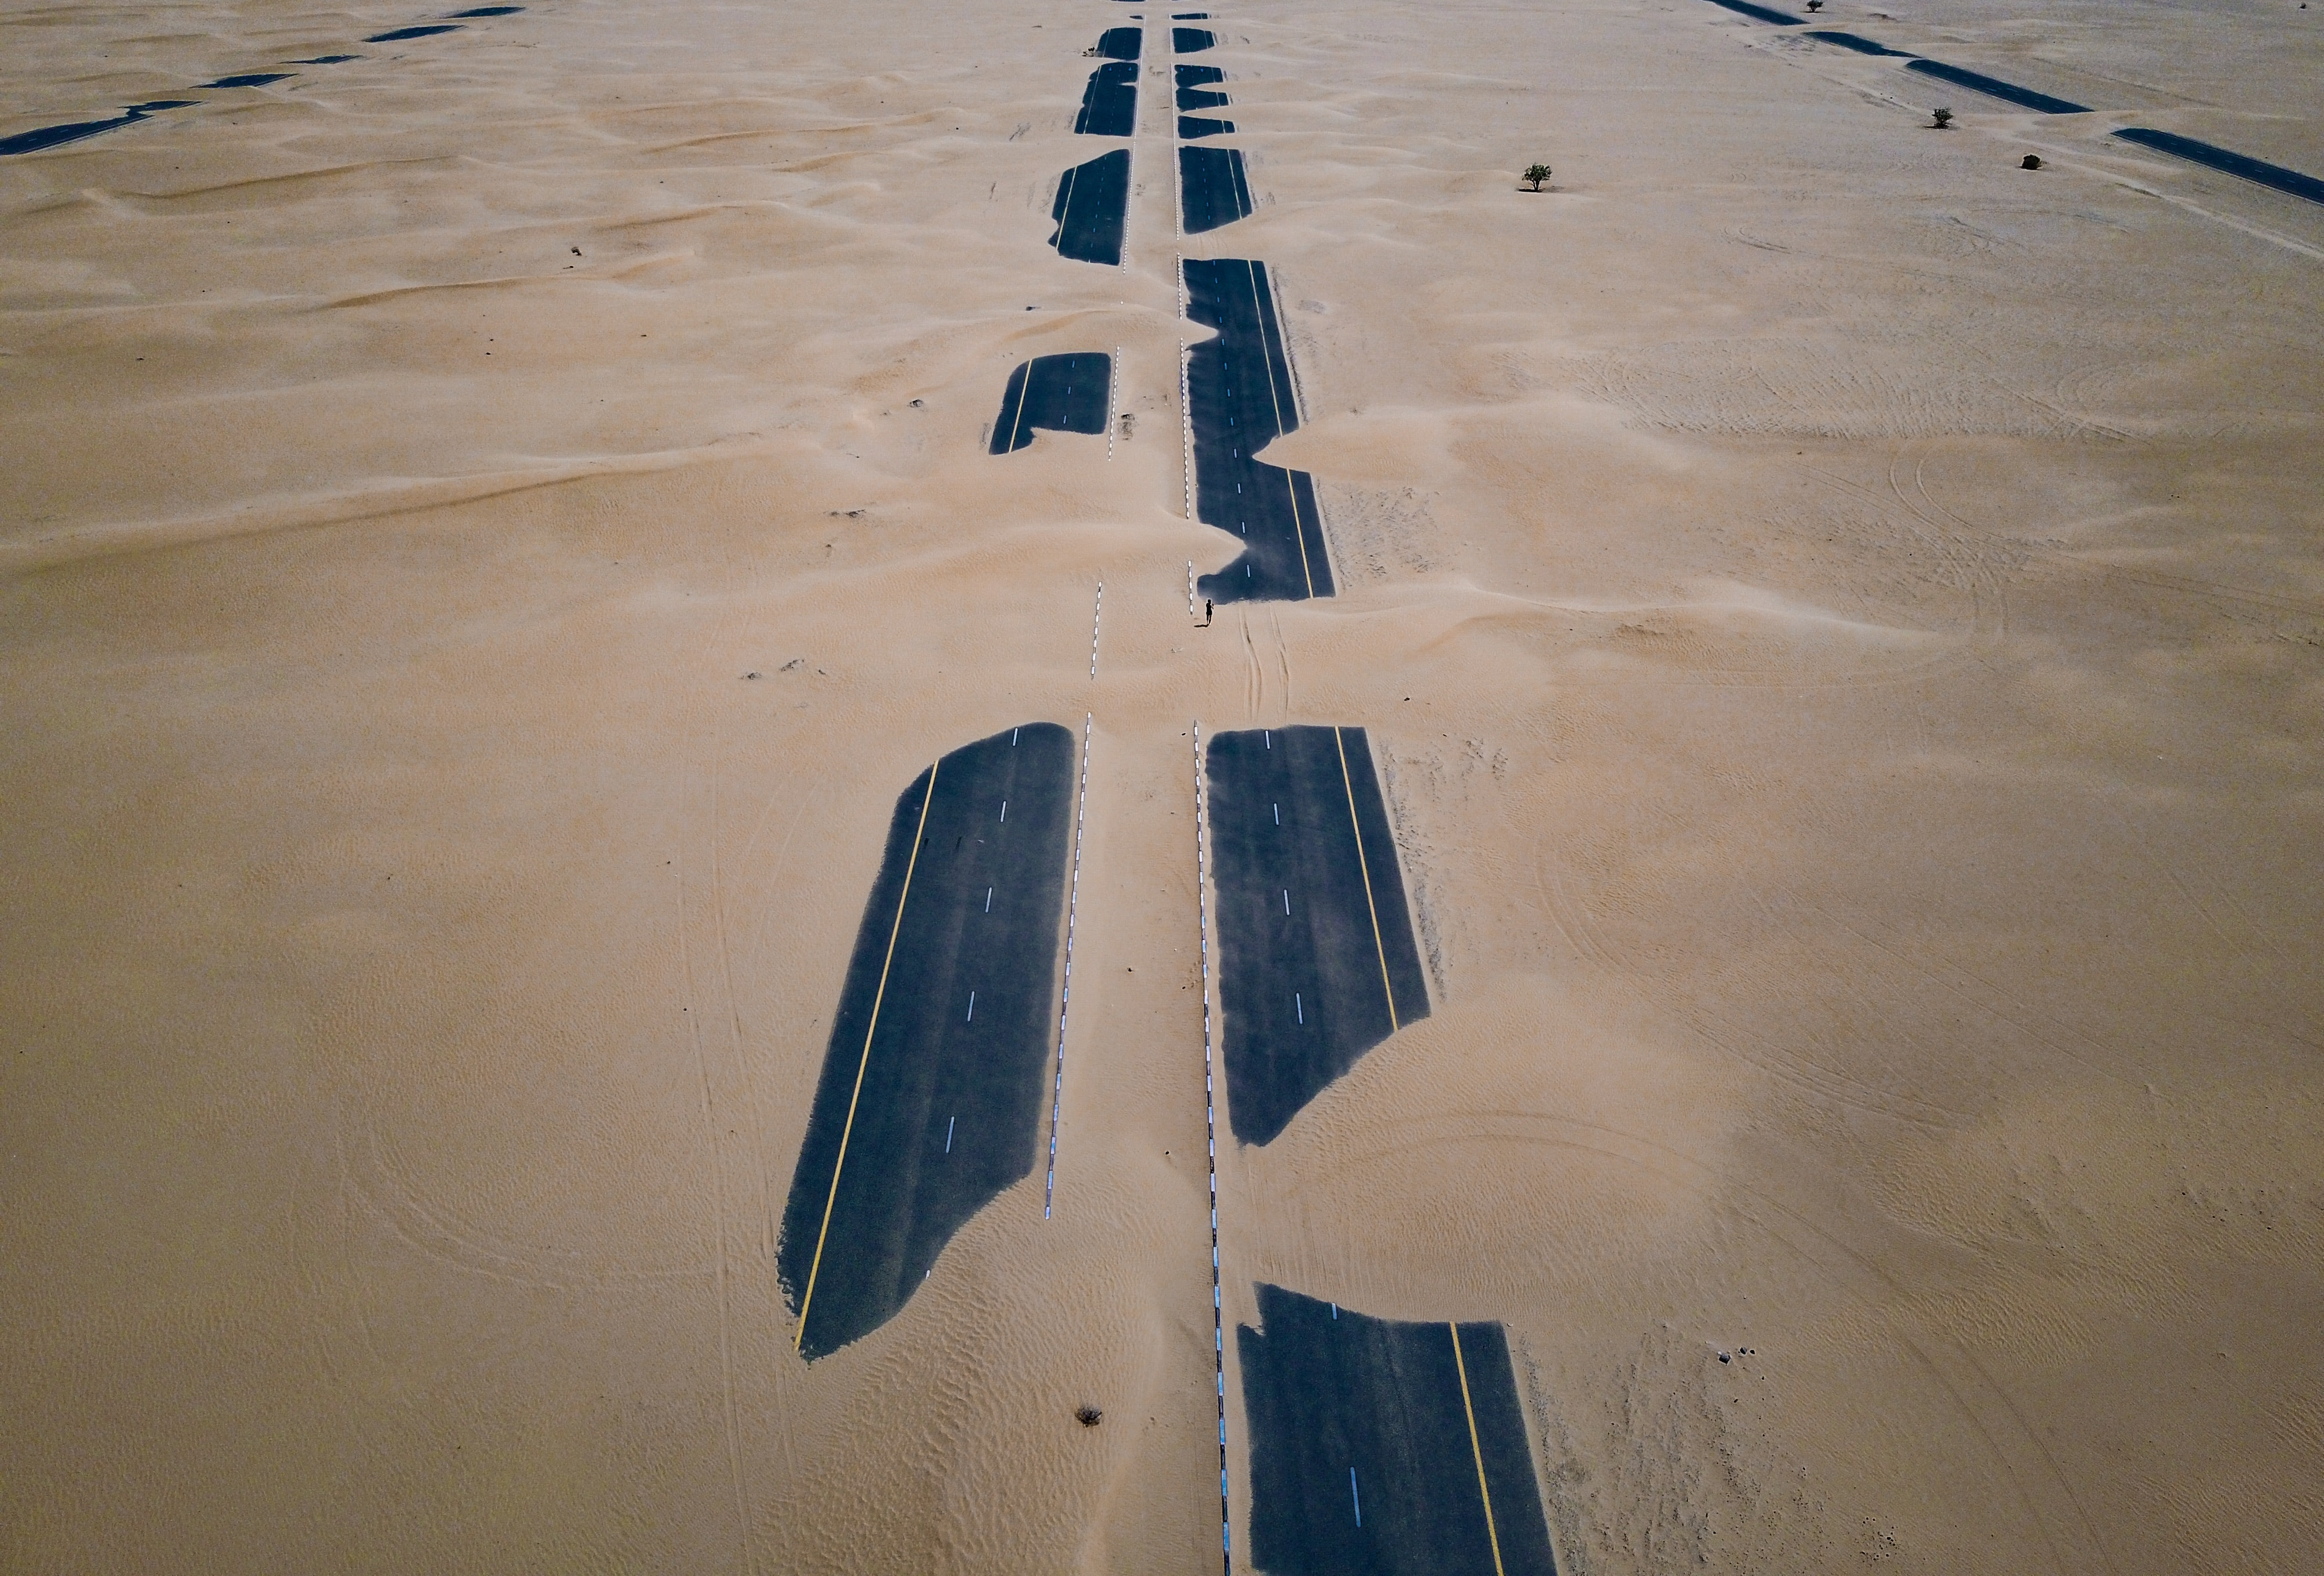 A two-lane road in Dubai covered in desert sand